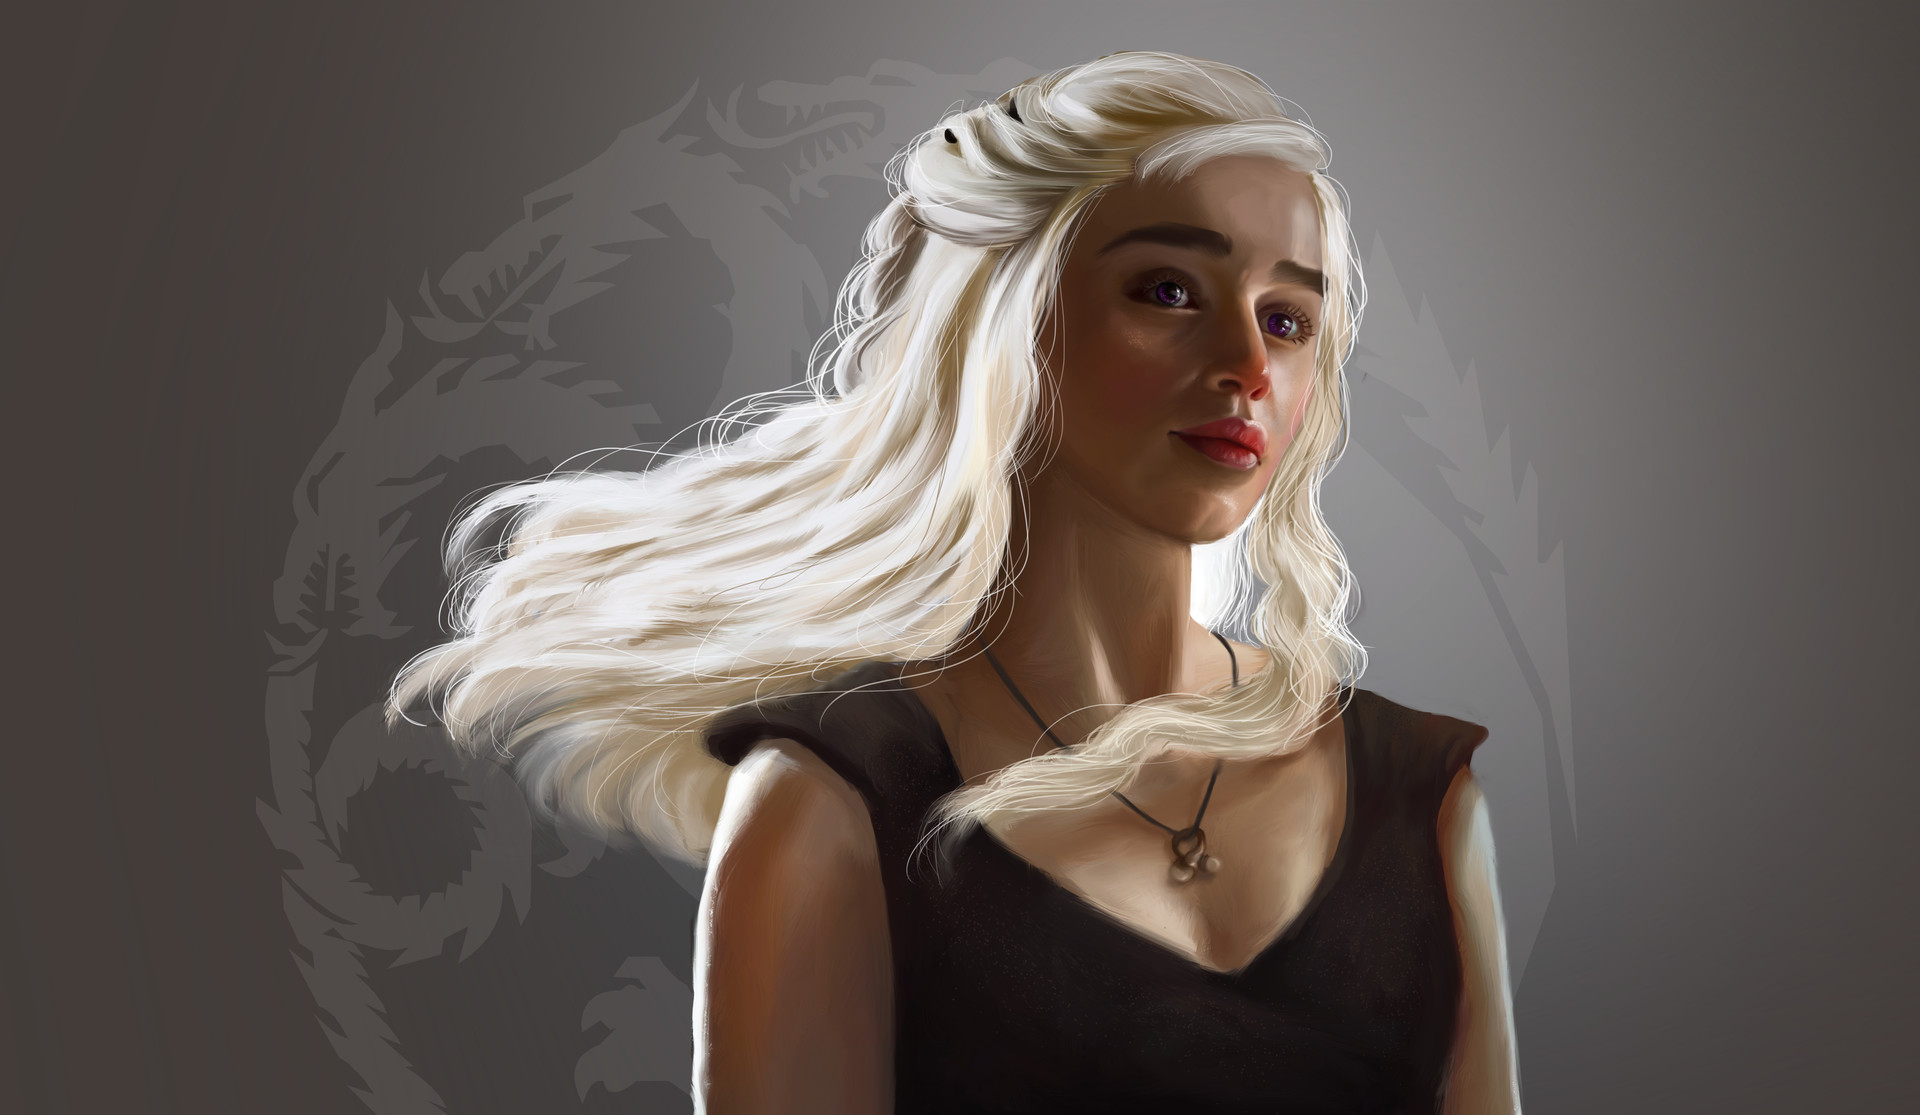 Game Of Thrones Hd Wallpaper Background Image 1920x1115 Id 713914 Wallpaper Abyss